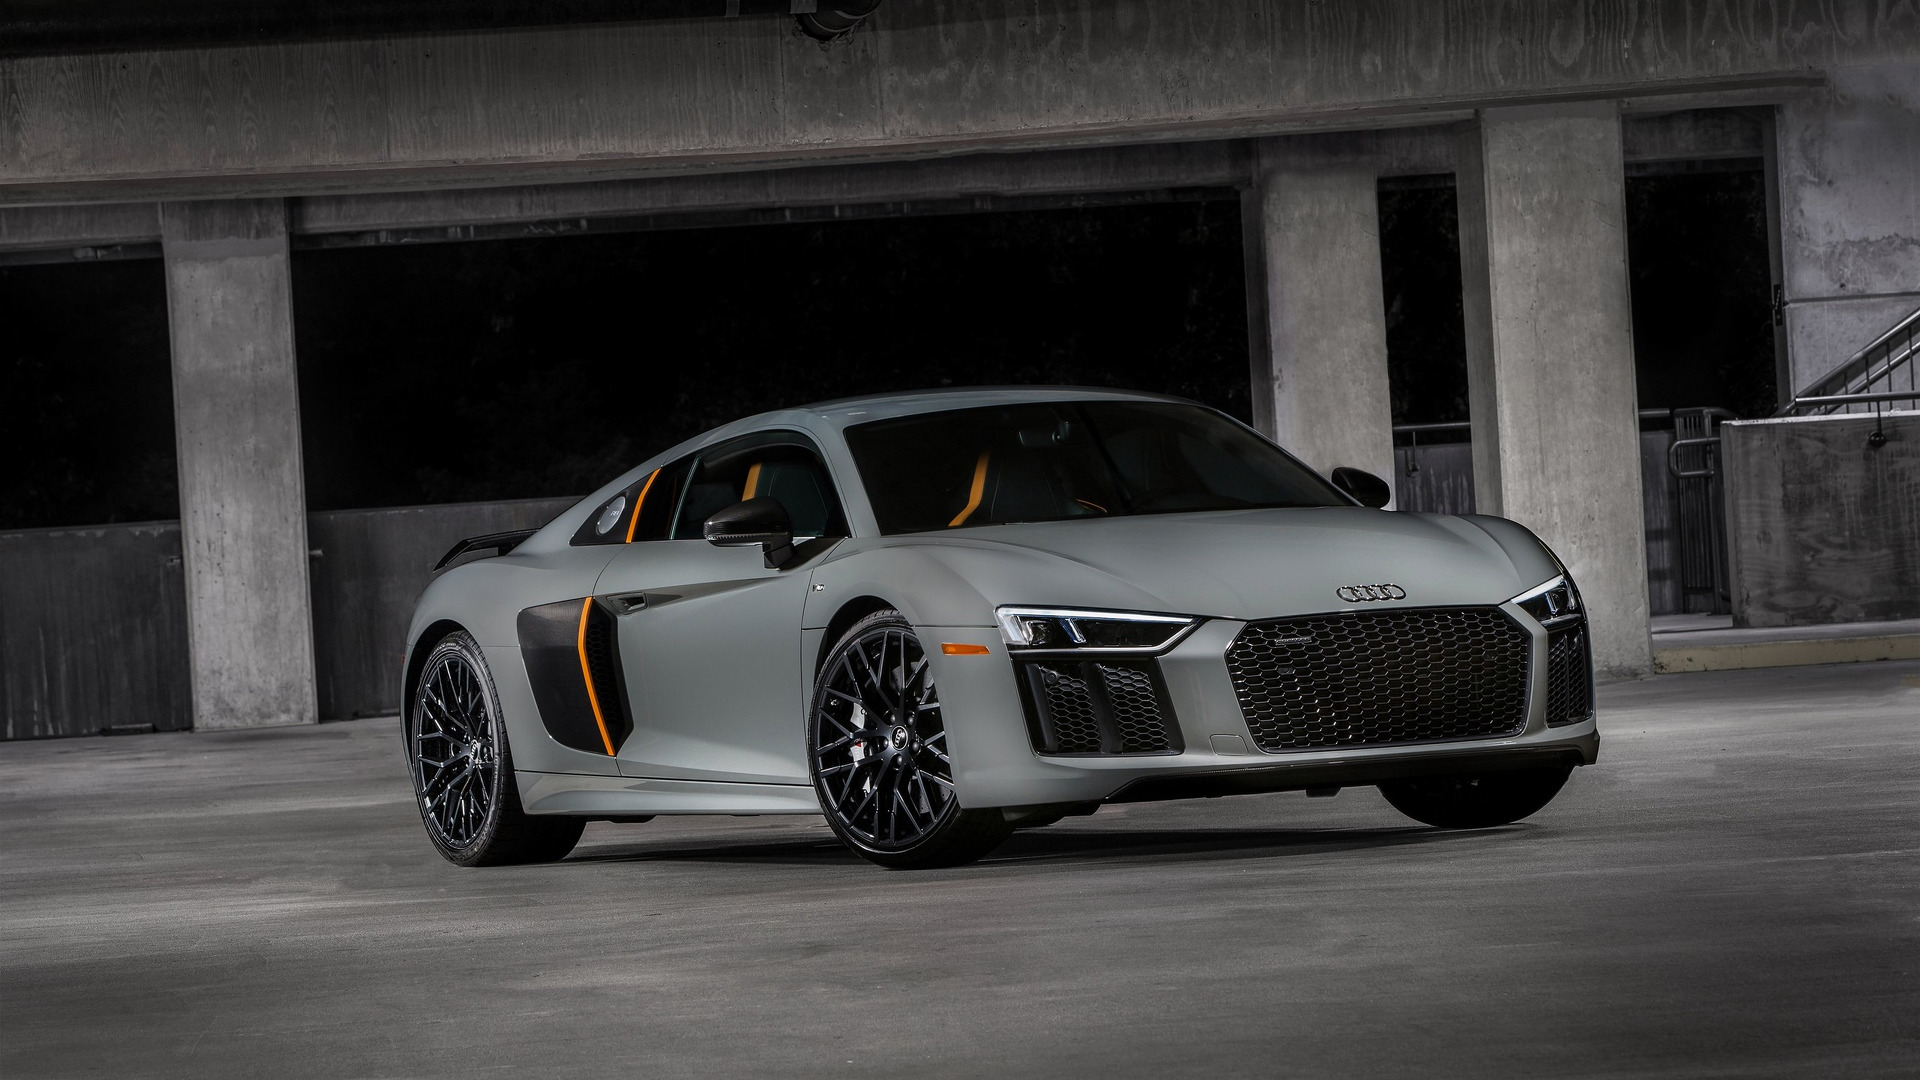 2017 Audi R8 V10 Plus Exclusive Edition Finally Brings